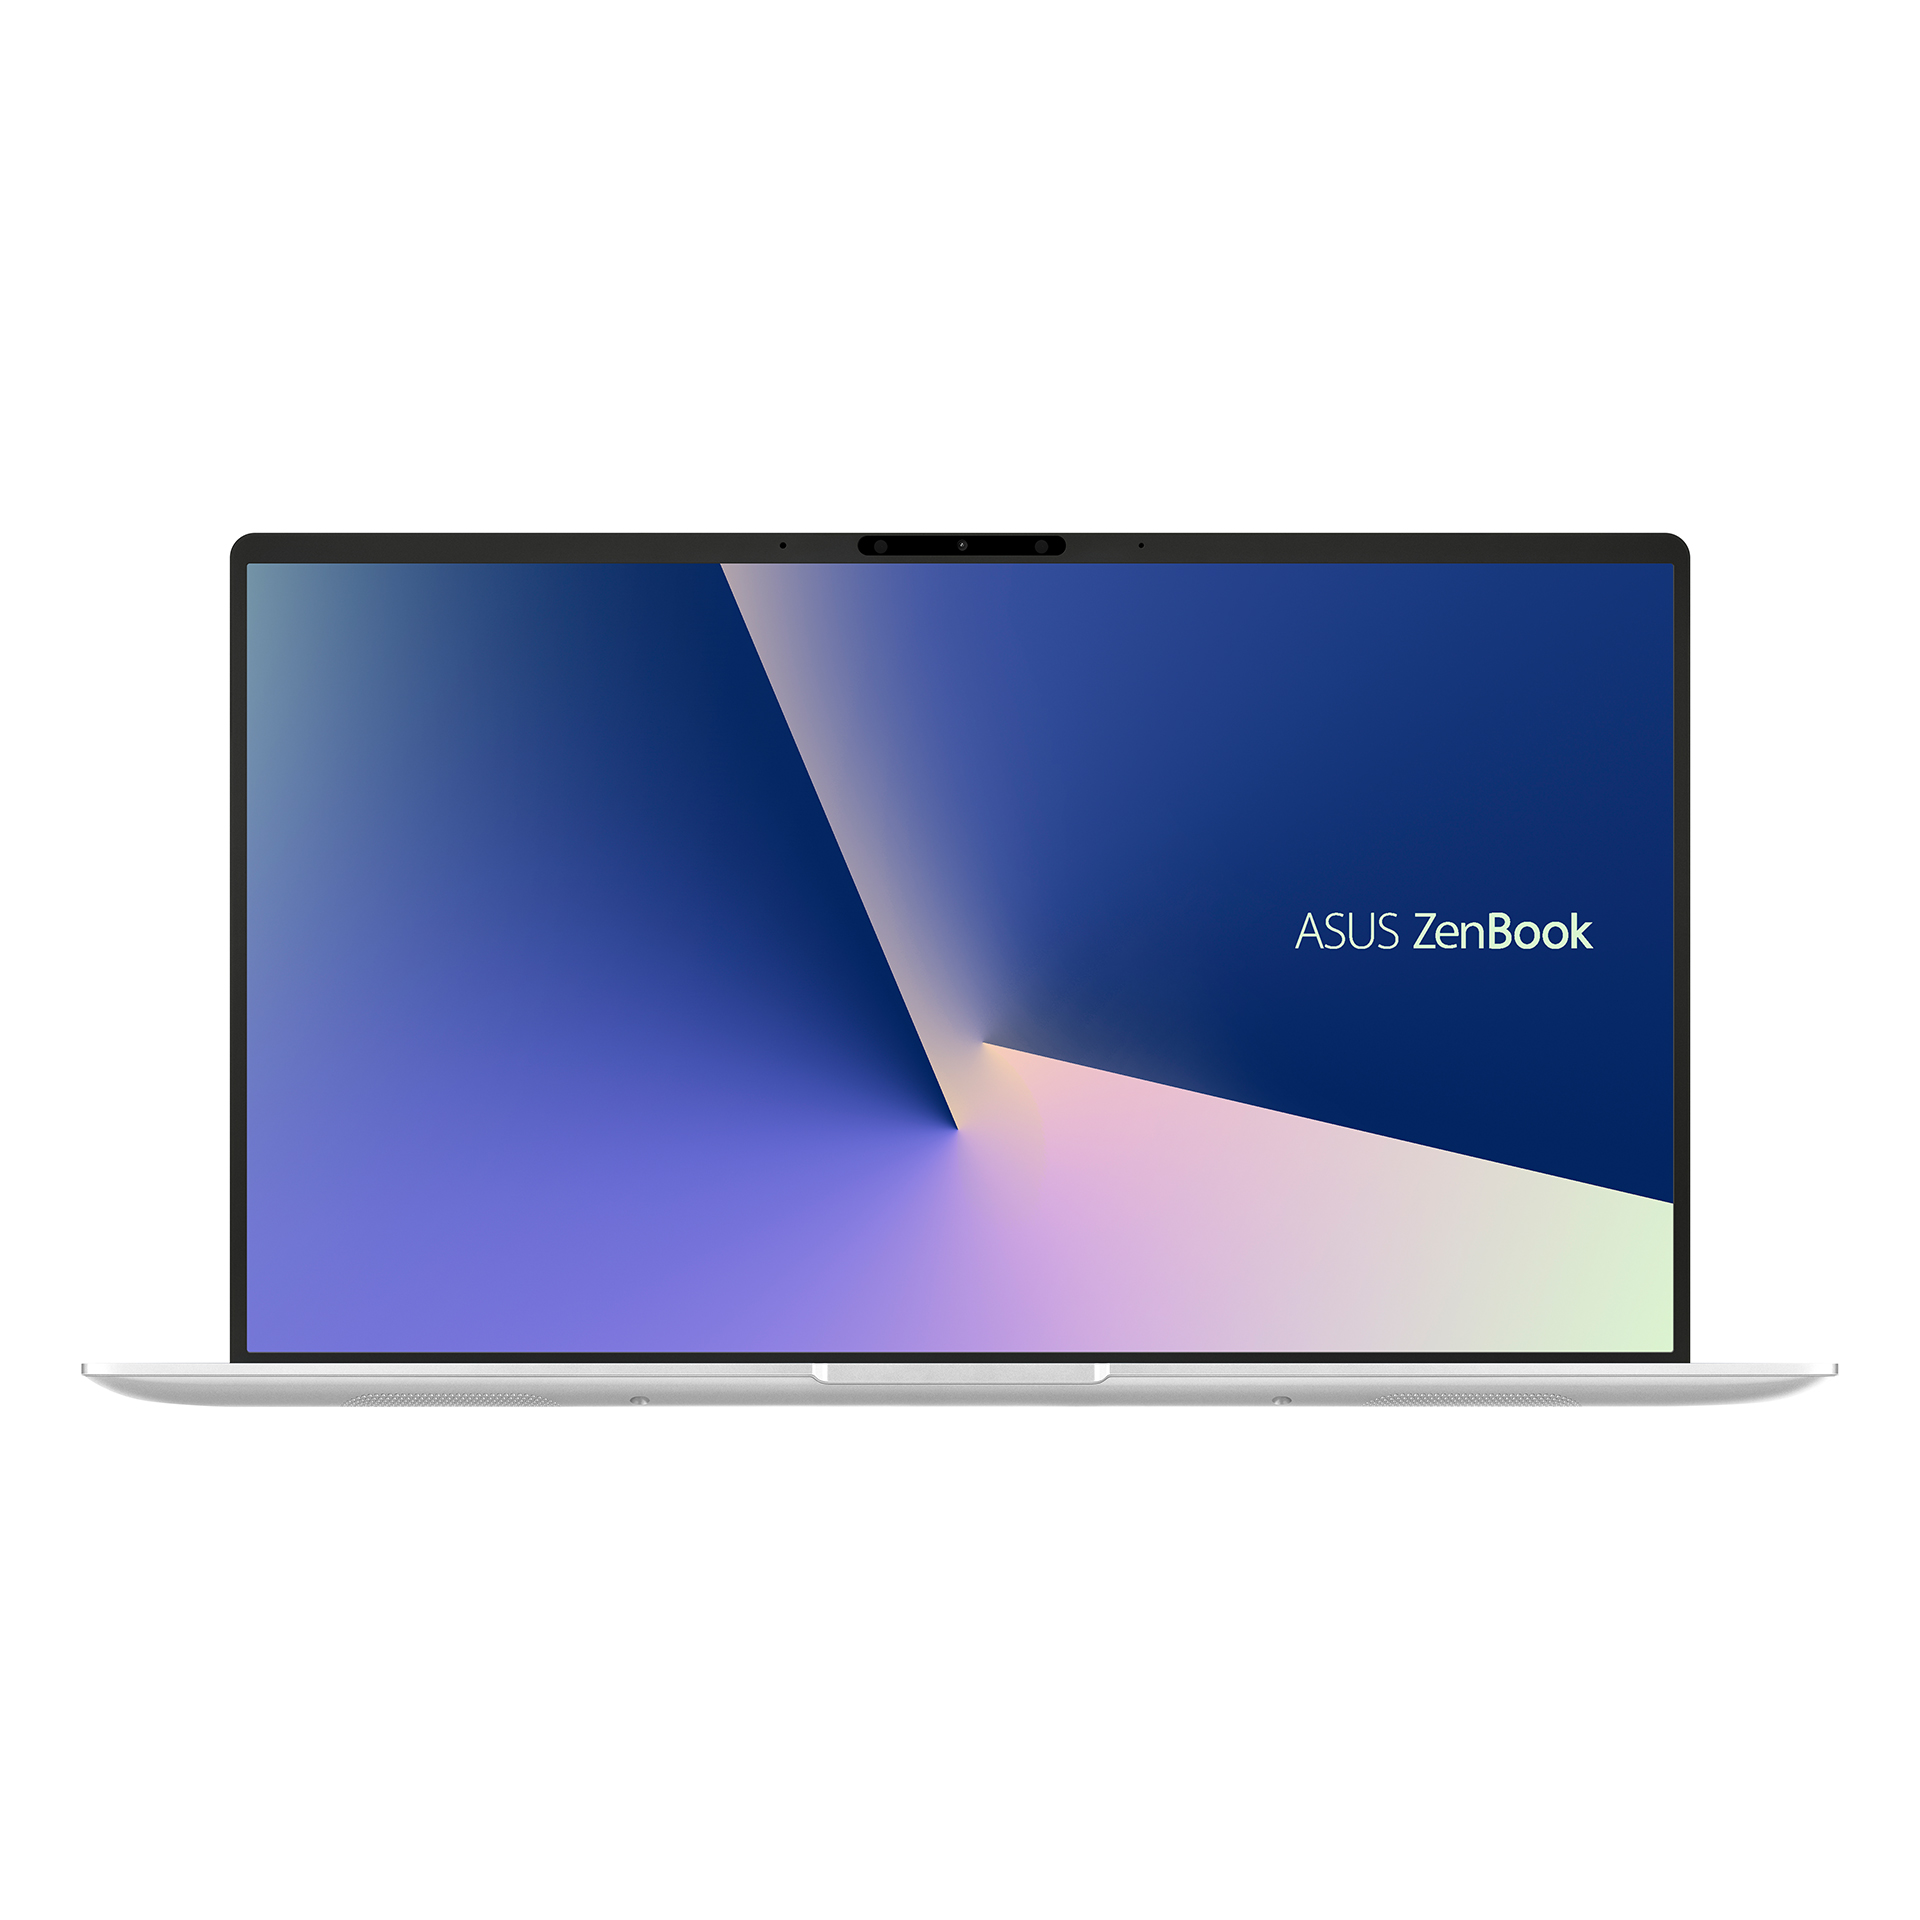 ASUS-UX433FA-ICICLE-SILVER-01.jpg